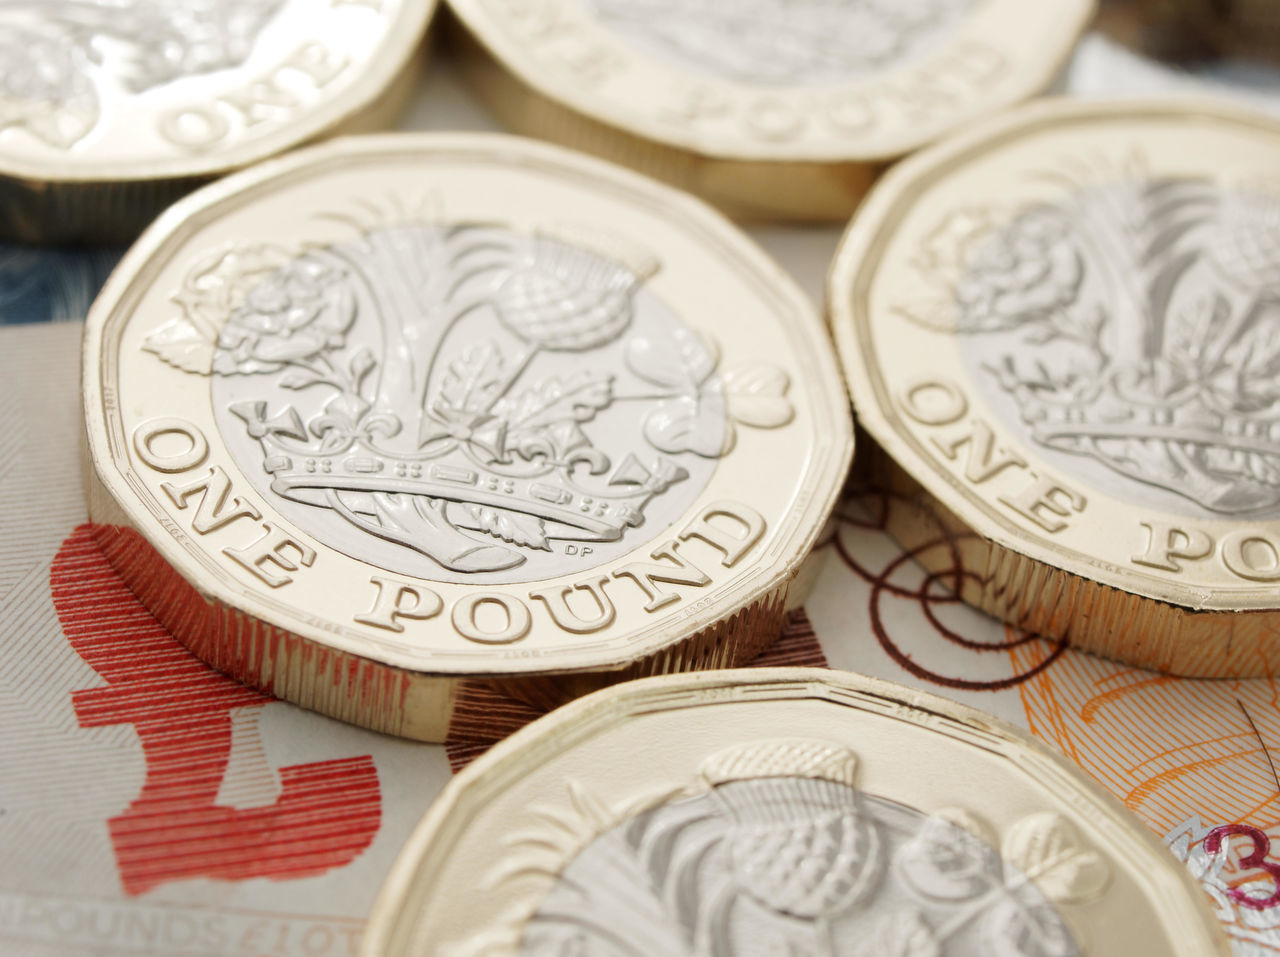 New One Pound GBP Coins on £10 and £5 notes, United Kingdom Accounting Banking Banks Brexit Business Cash Coin Coins Currency England Exchange Finance Gbp Investment Investments Money New Pound Coin One Pound One Pound Coin Pound Pound Coin Royal Mint Savings Sterling Wealth